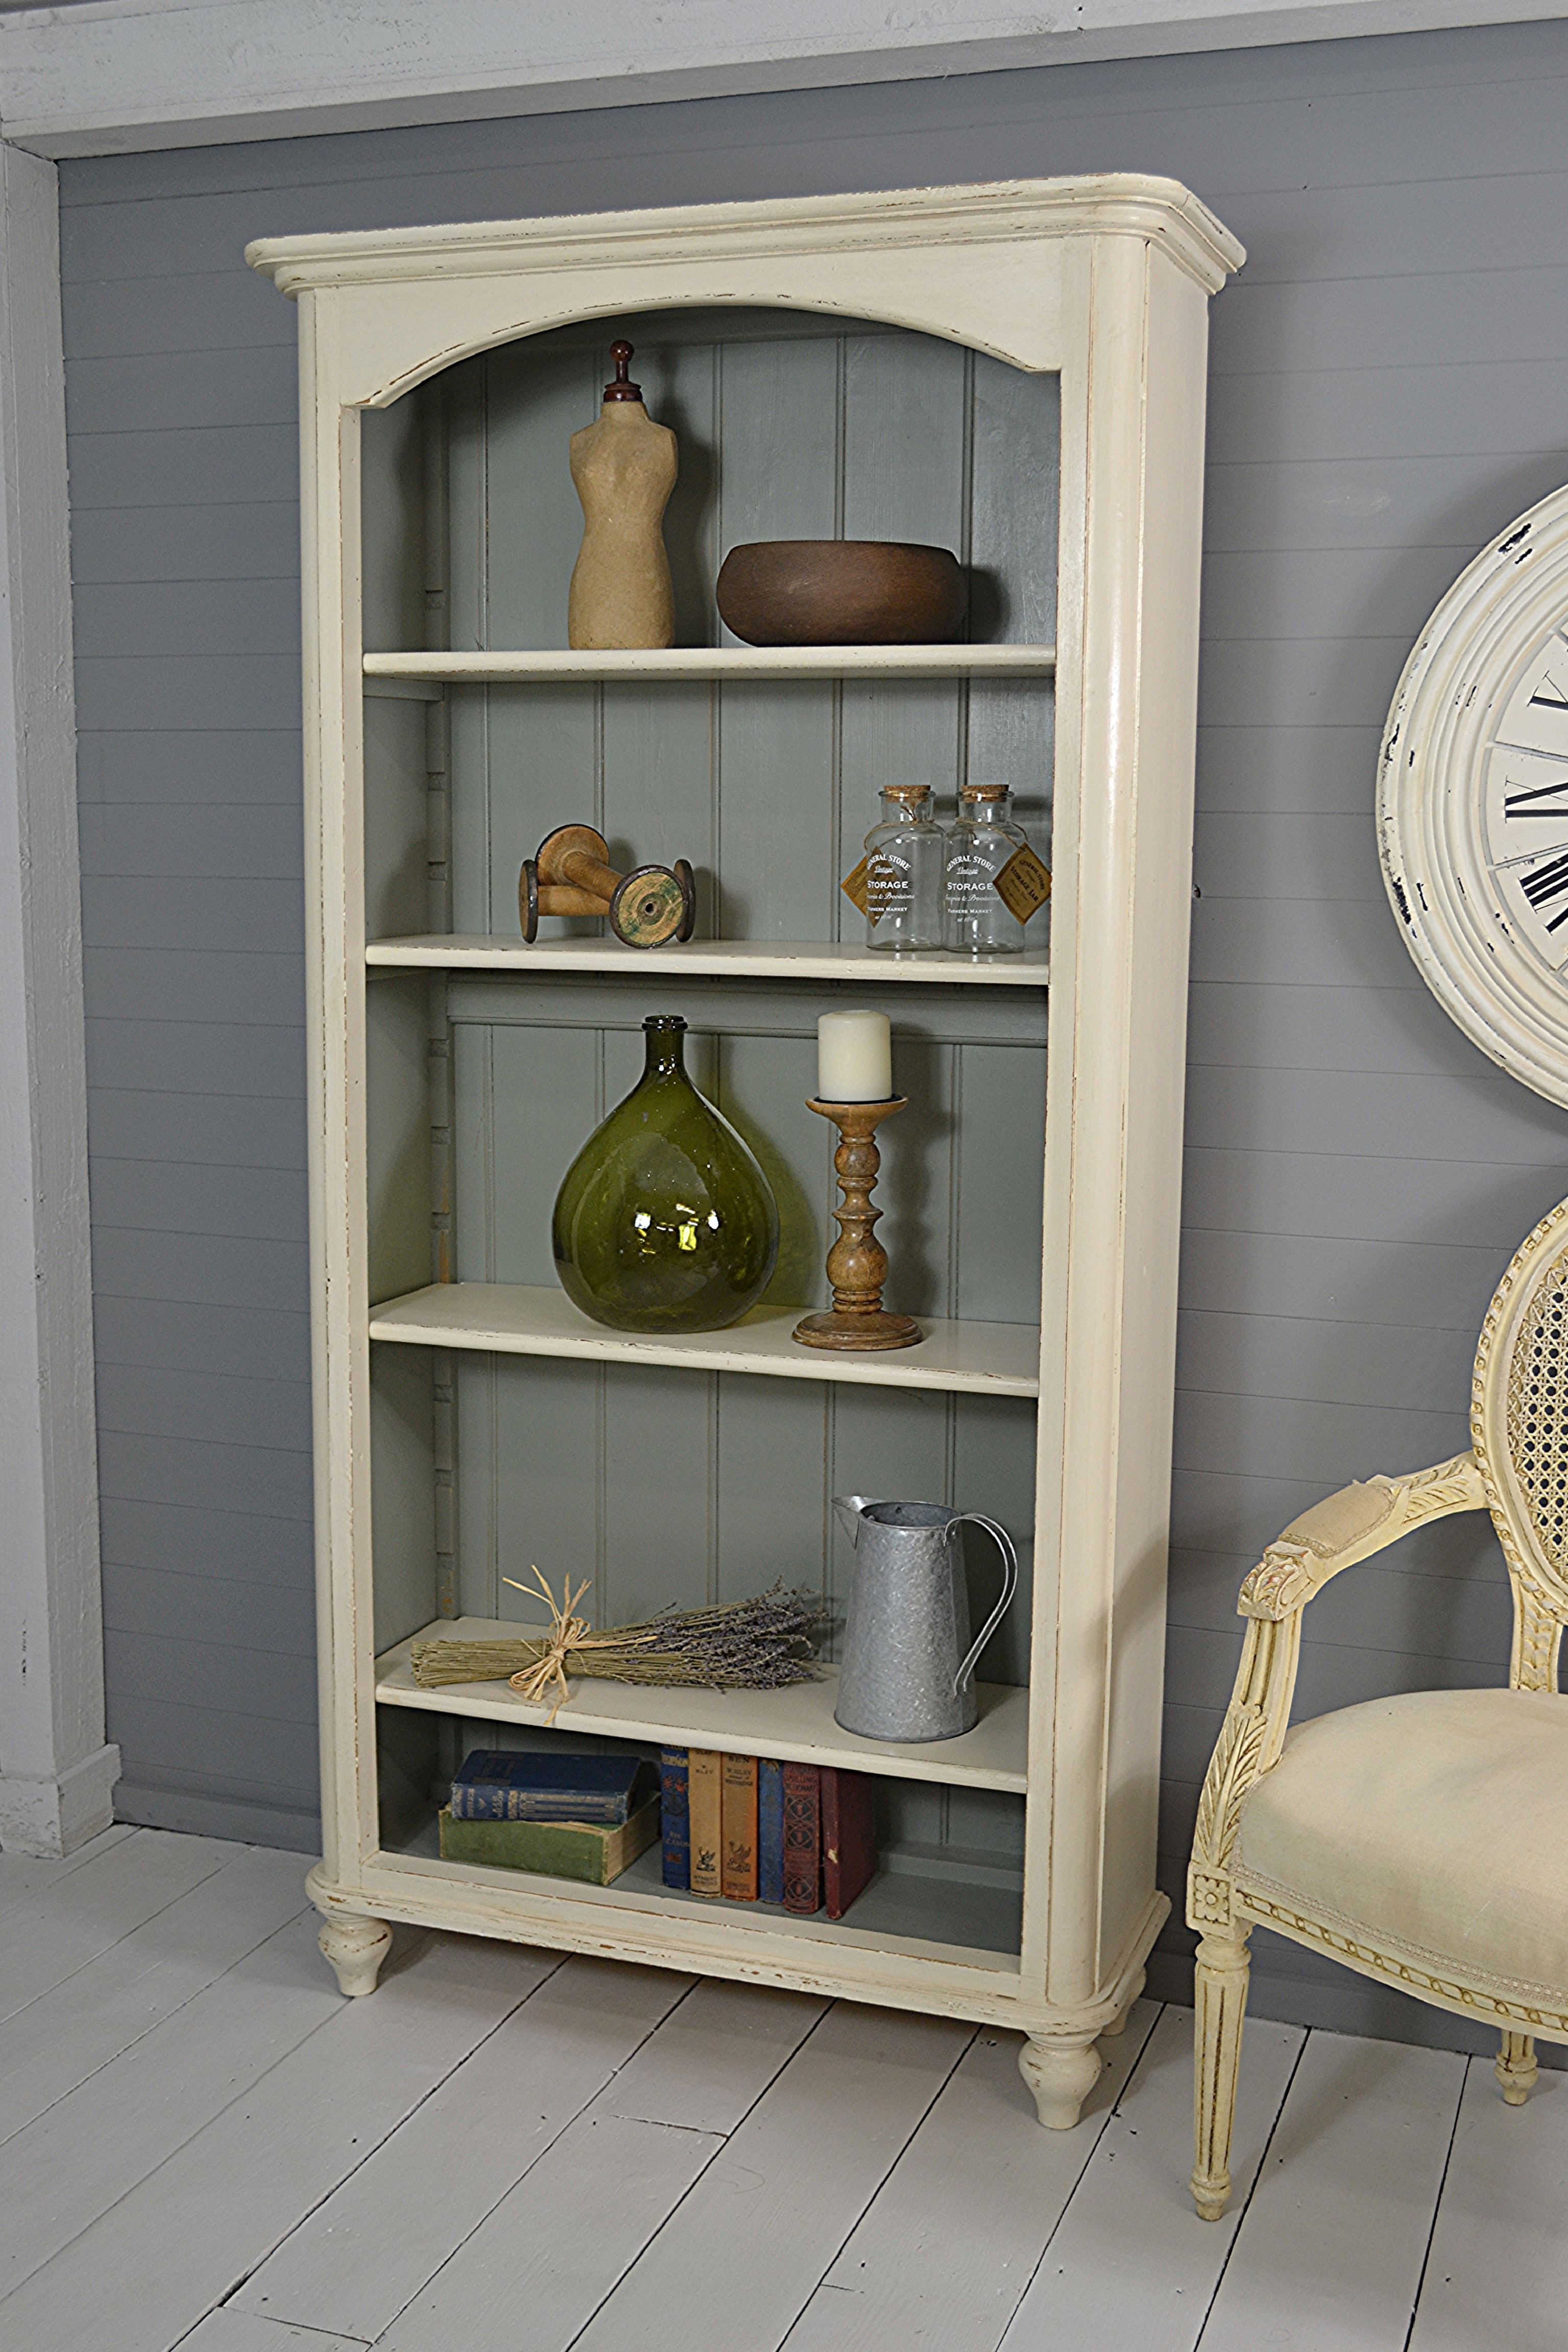 #Letstrove This Simple Yet Striking Slimline Bookcase Can Fit Just